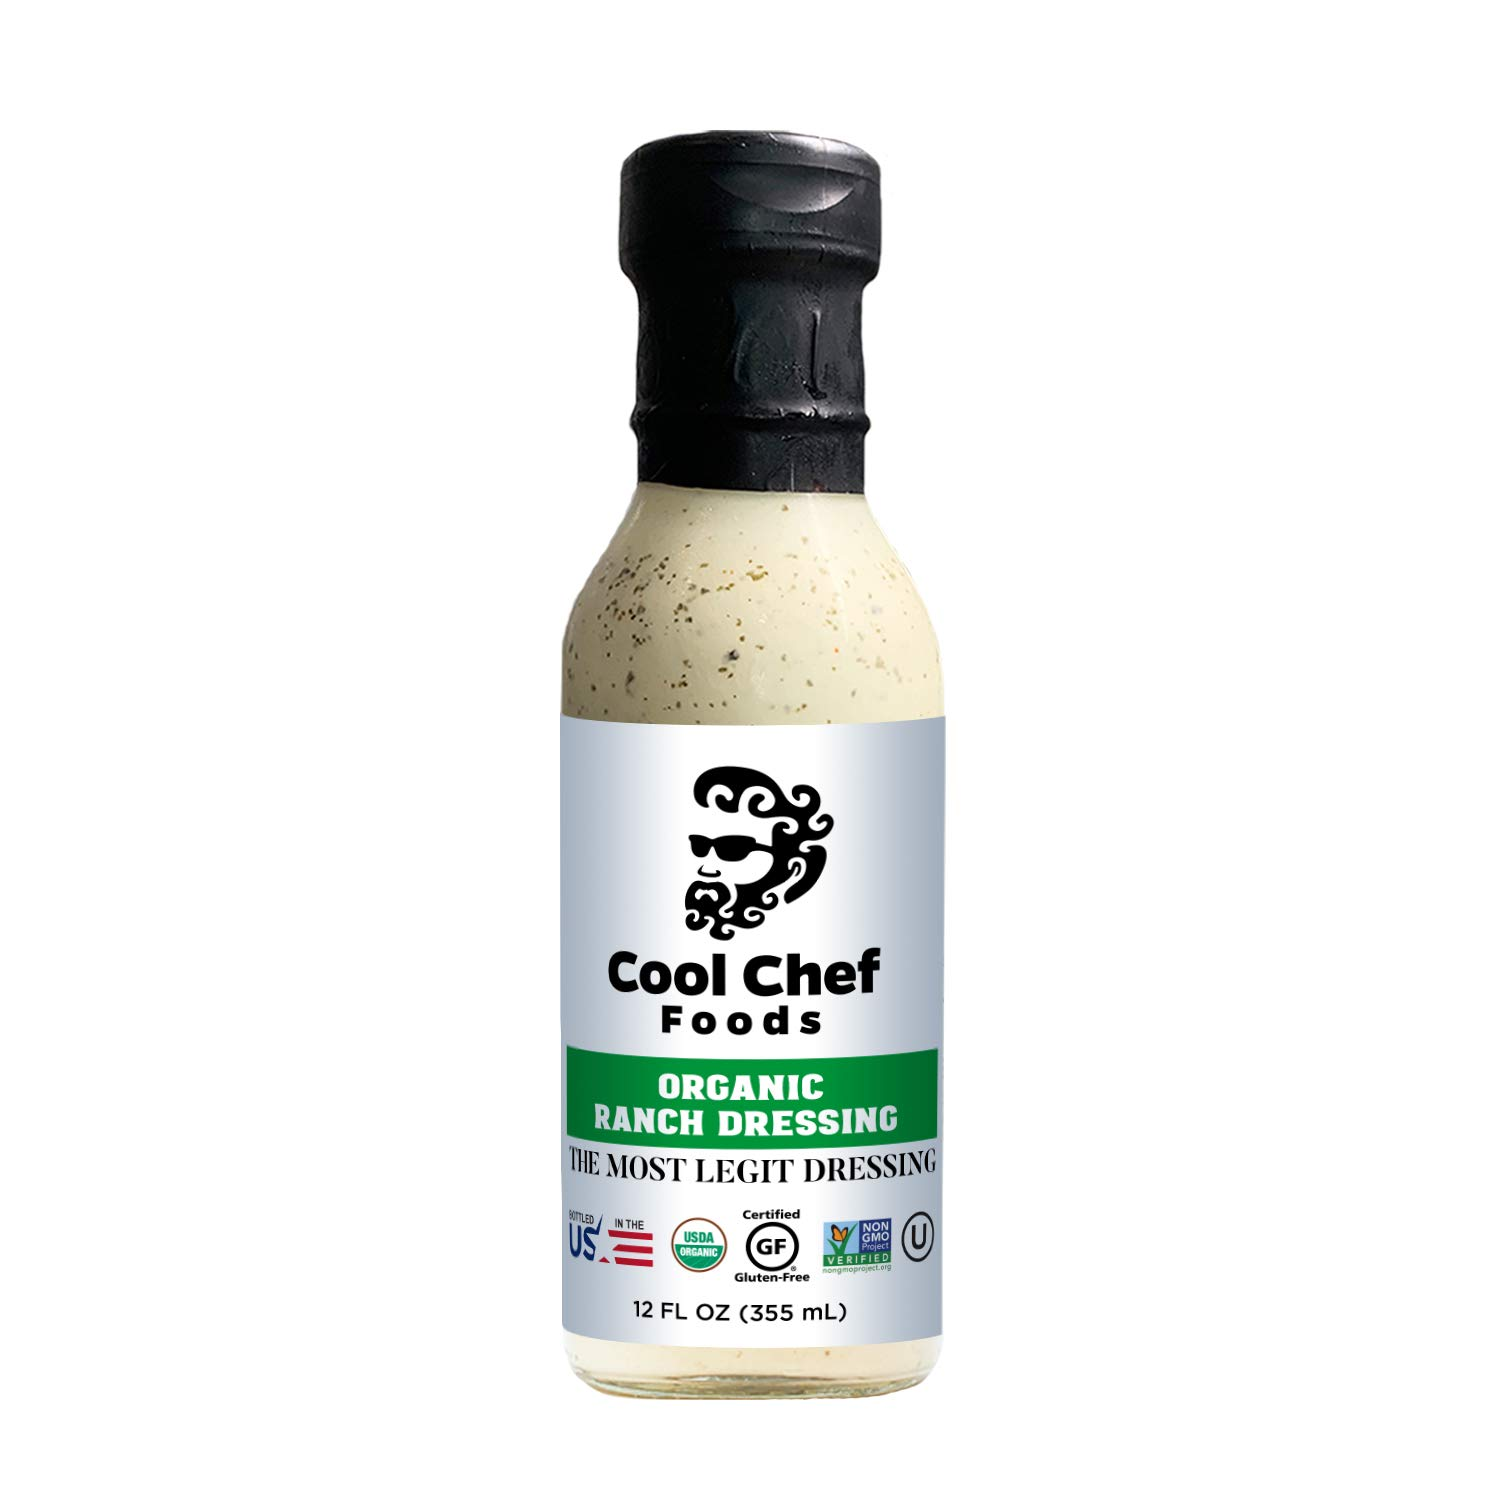 Cool Chef Foods - Organic Ranch Dressing - Non-GMO - Bottled in the USA - Gluten-Free - Dairy-Free - Kosher & Low-Carb - 12 FL OZ (355 ML) Bottle